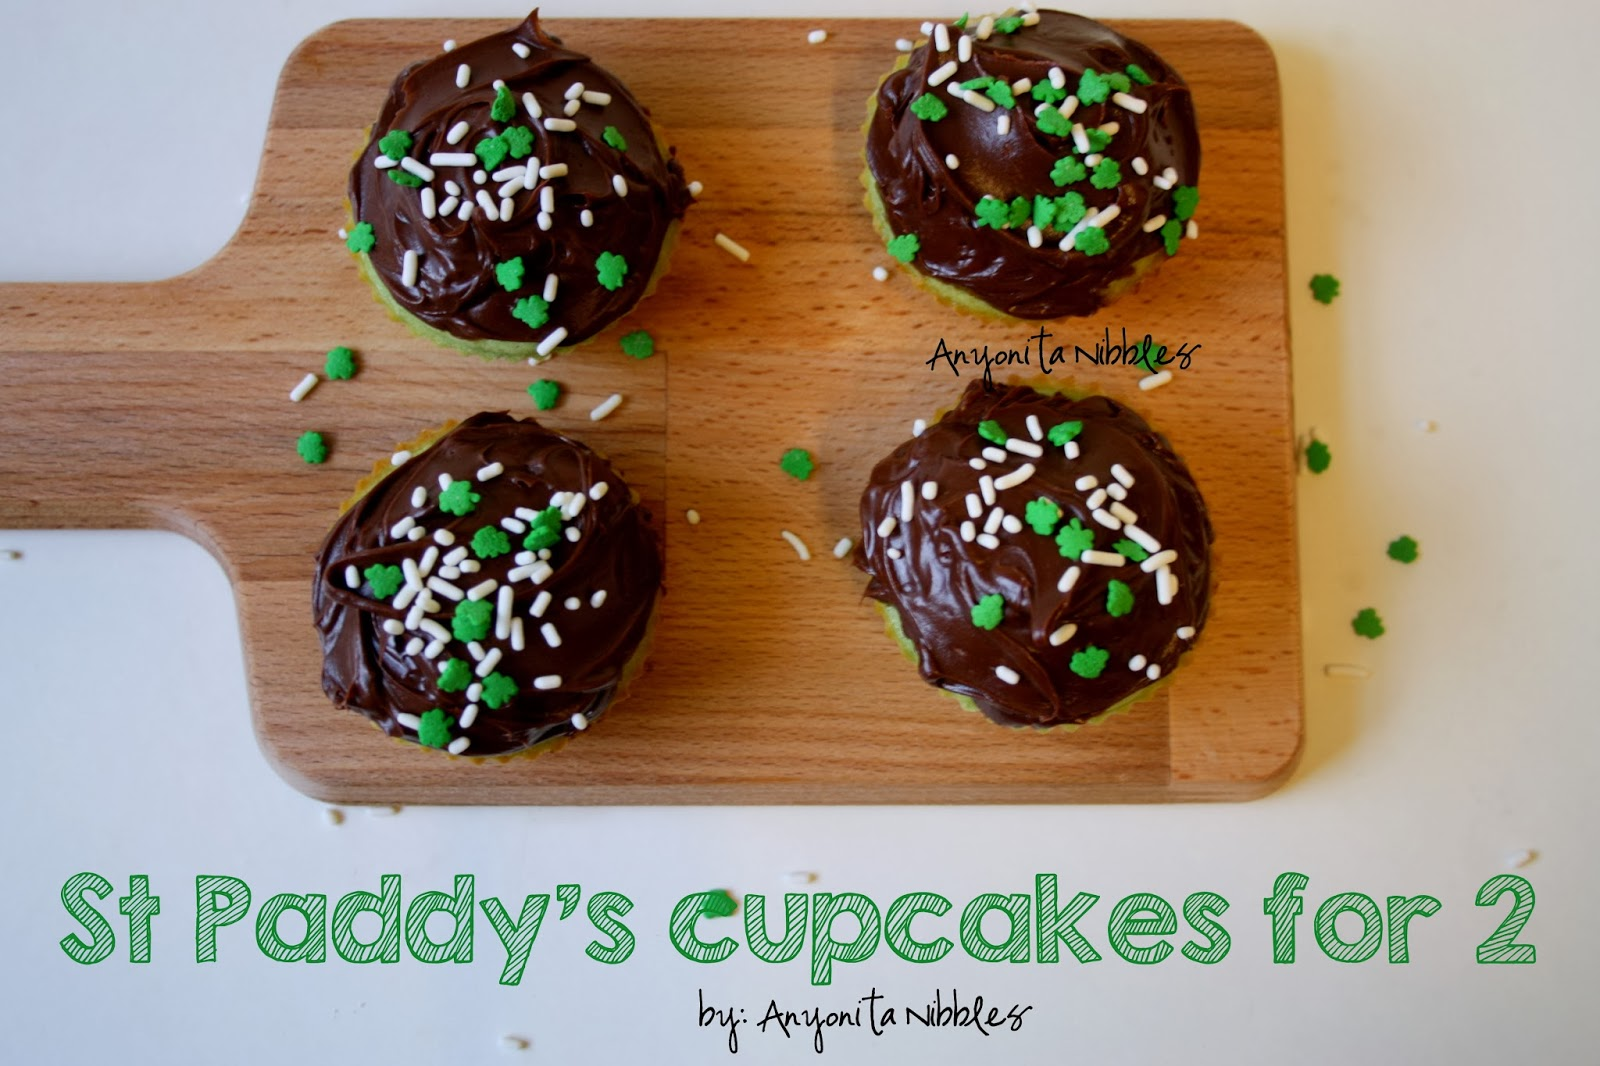 Four St Patrick's Day Cupcakes for Two | Anyonita Nibbles